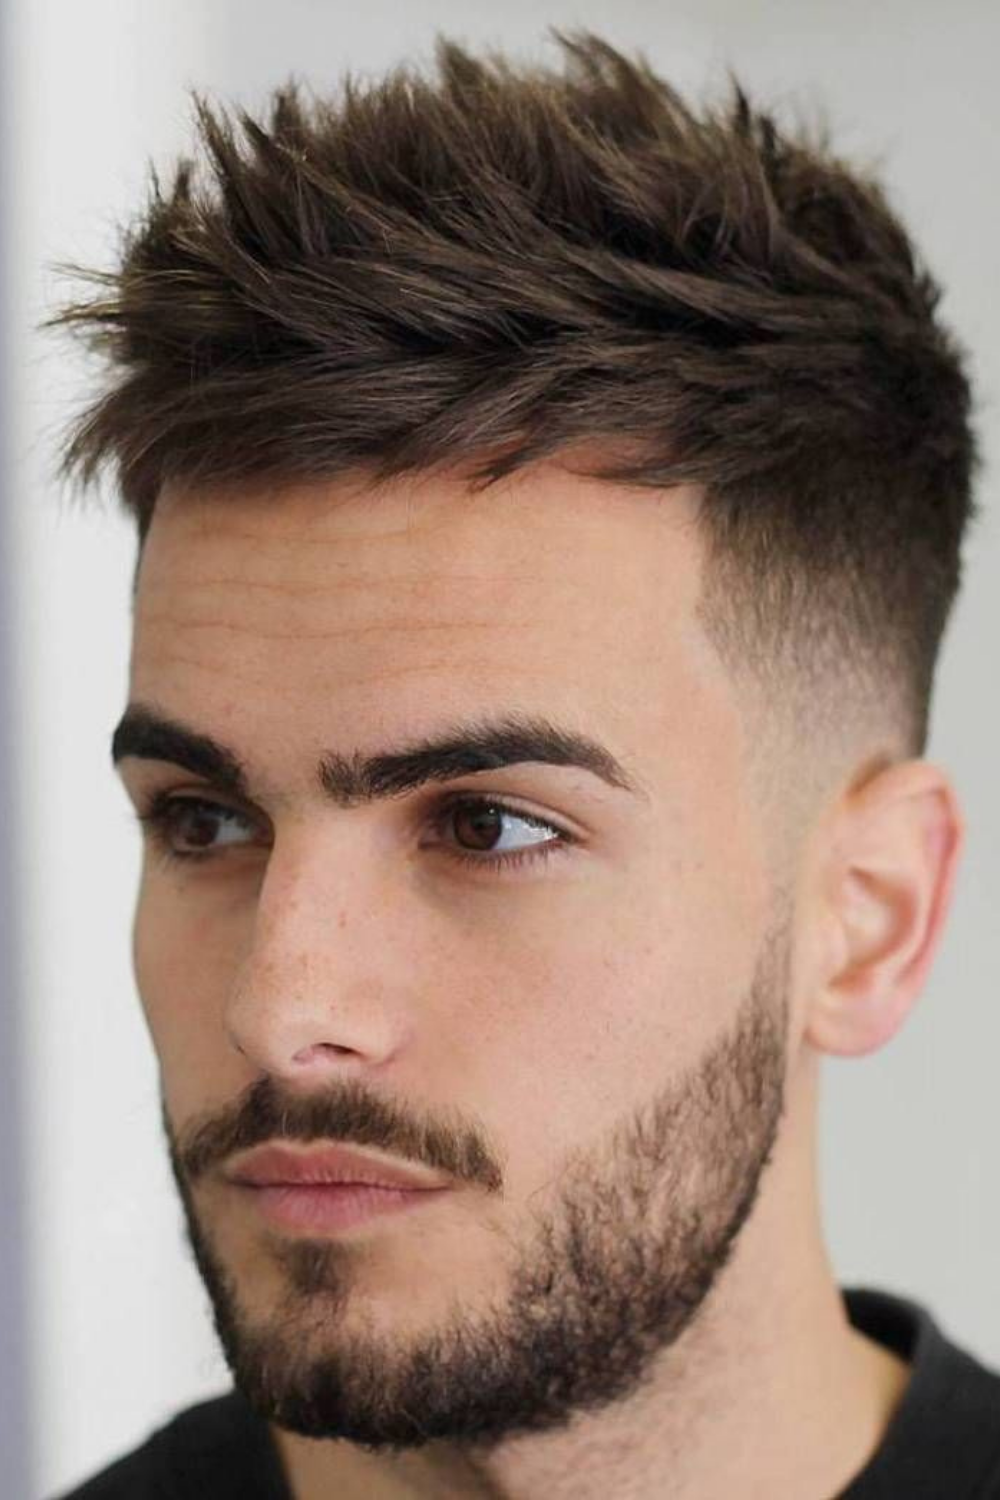 Faded Sides Up Volume And Grown Beard Faded Hair Short Textured Haircuts Men Haircut Styles